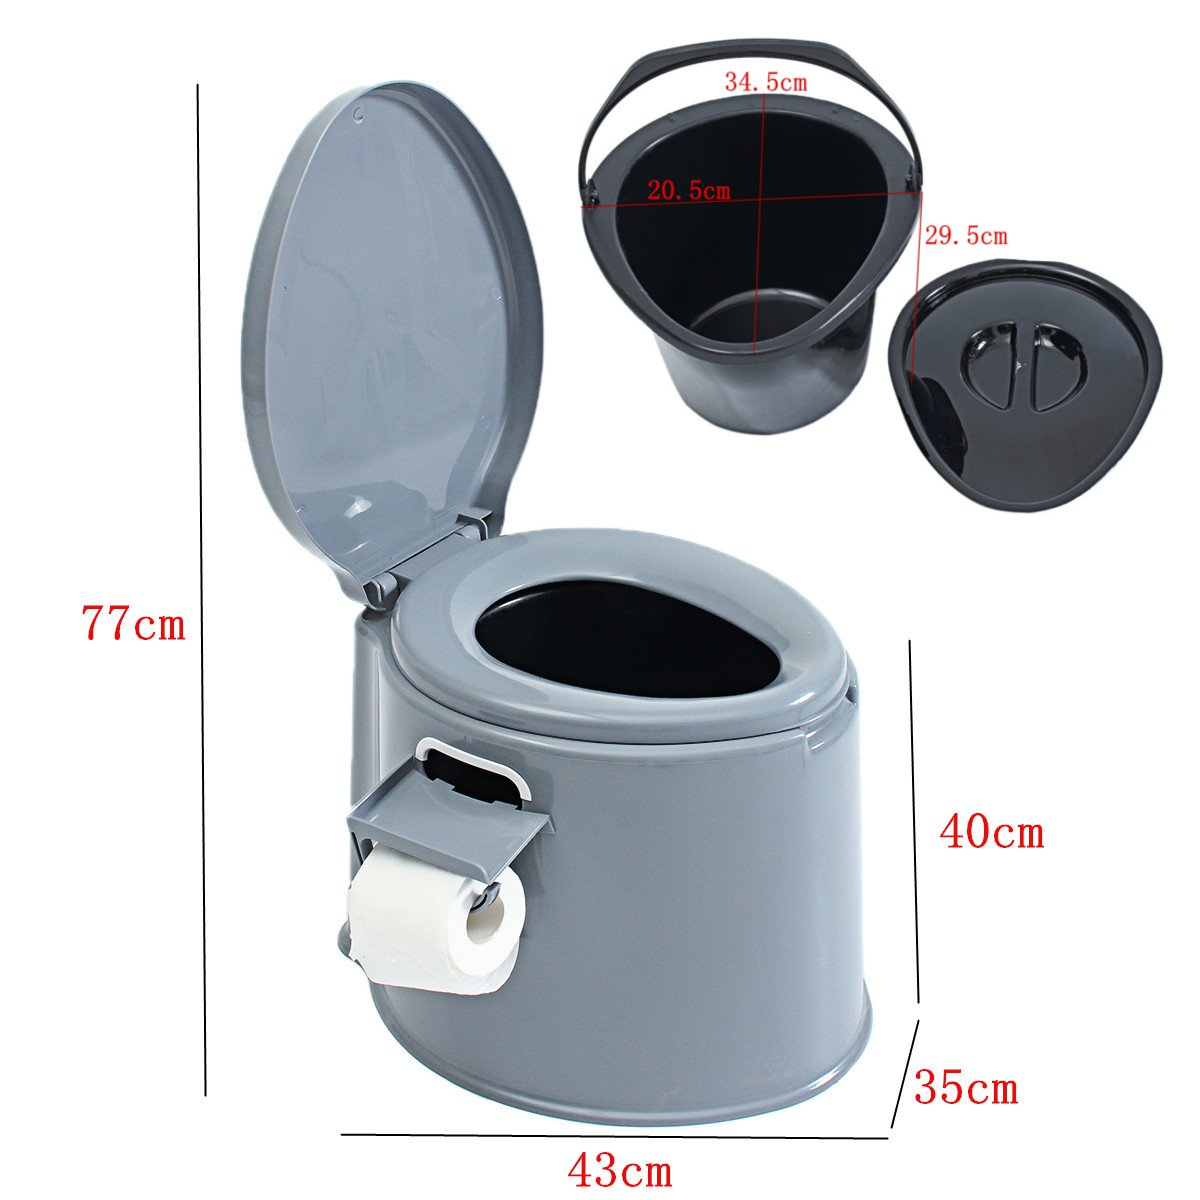 Portable Toilet Potty Commode Flush for the Elderly Travel Camping Hiking Outdoor Assists Disabled Elderly or